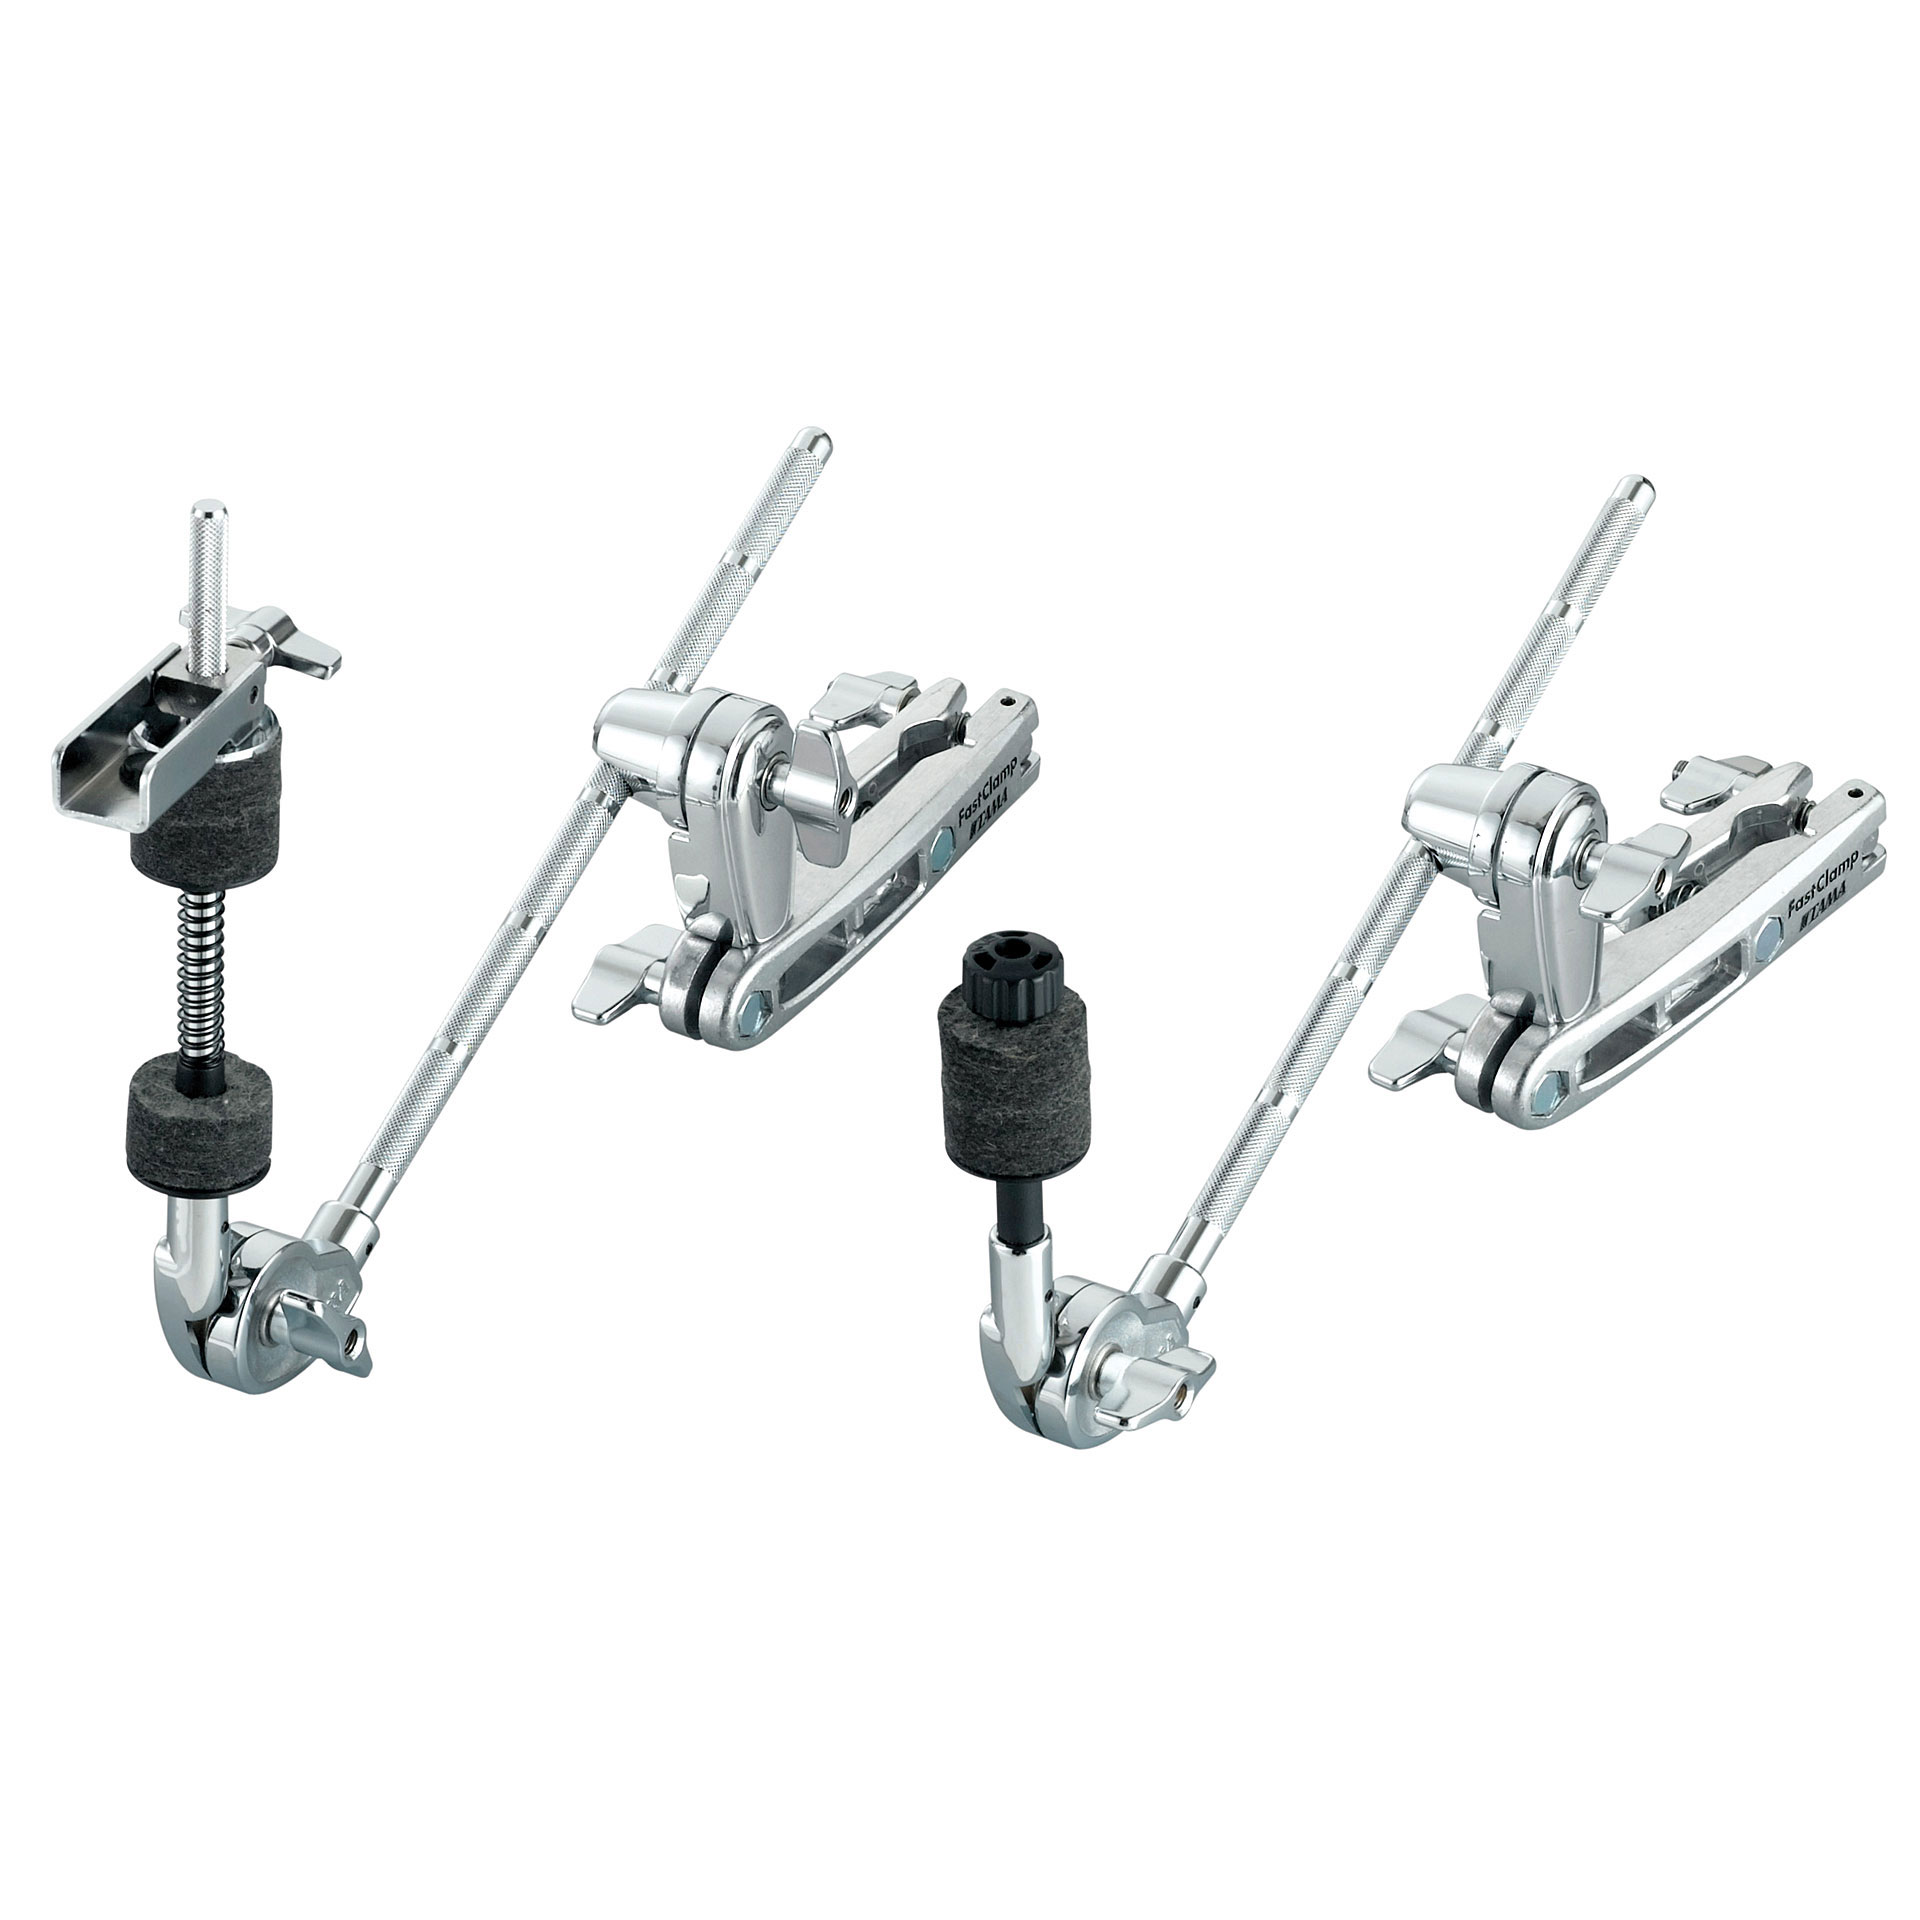 Tama Silverstar Cocktail-JAM Cymbal Mounting Attachment Kit